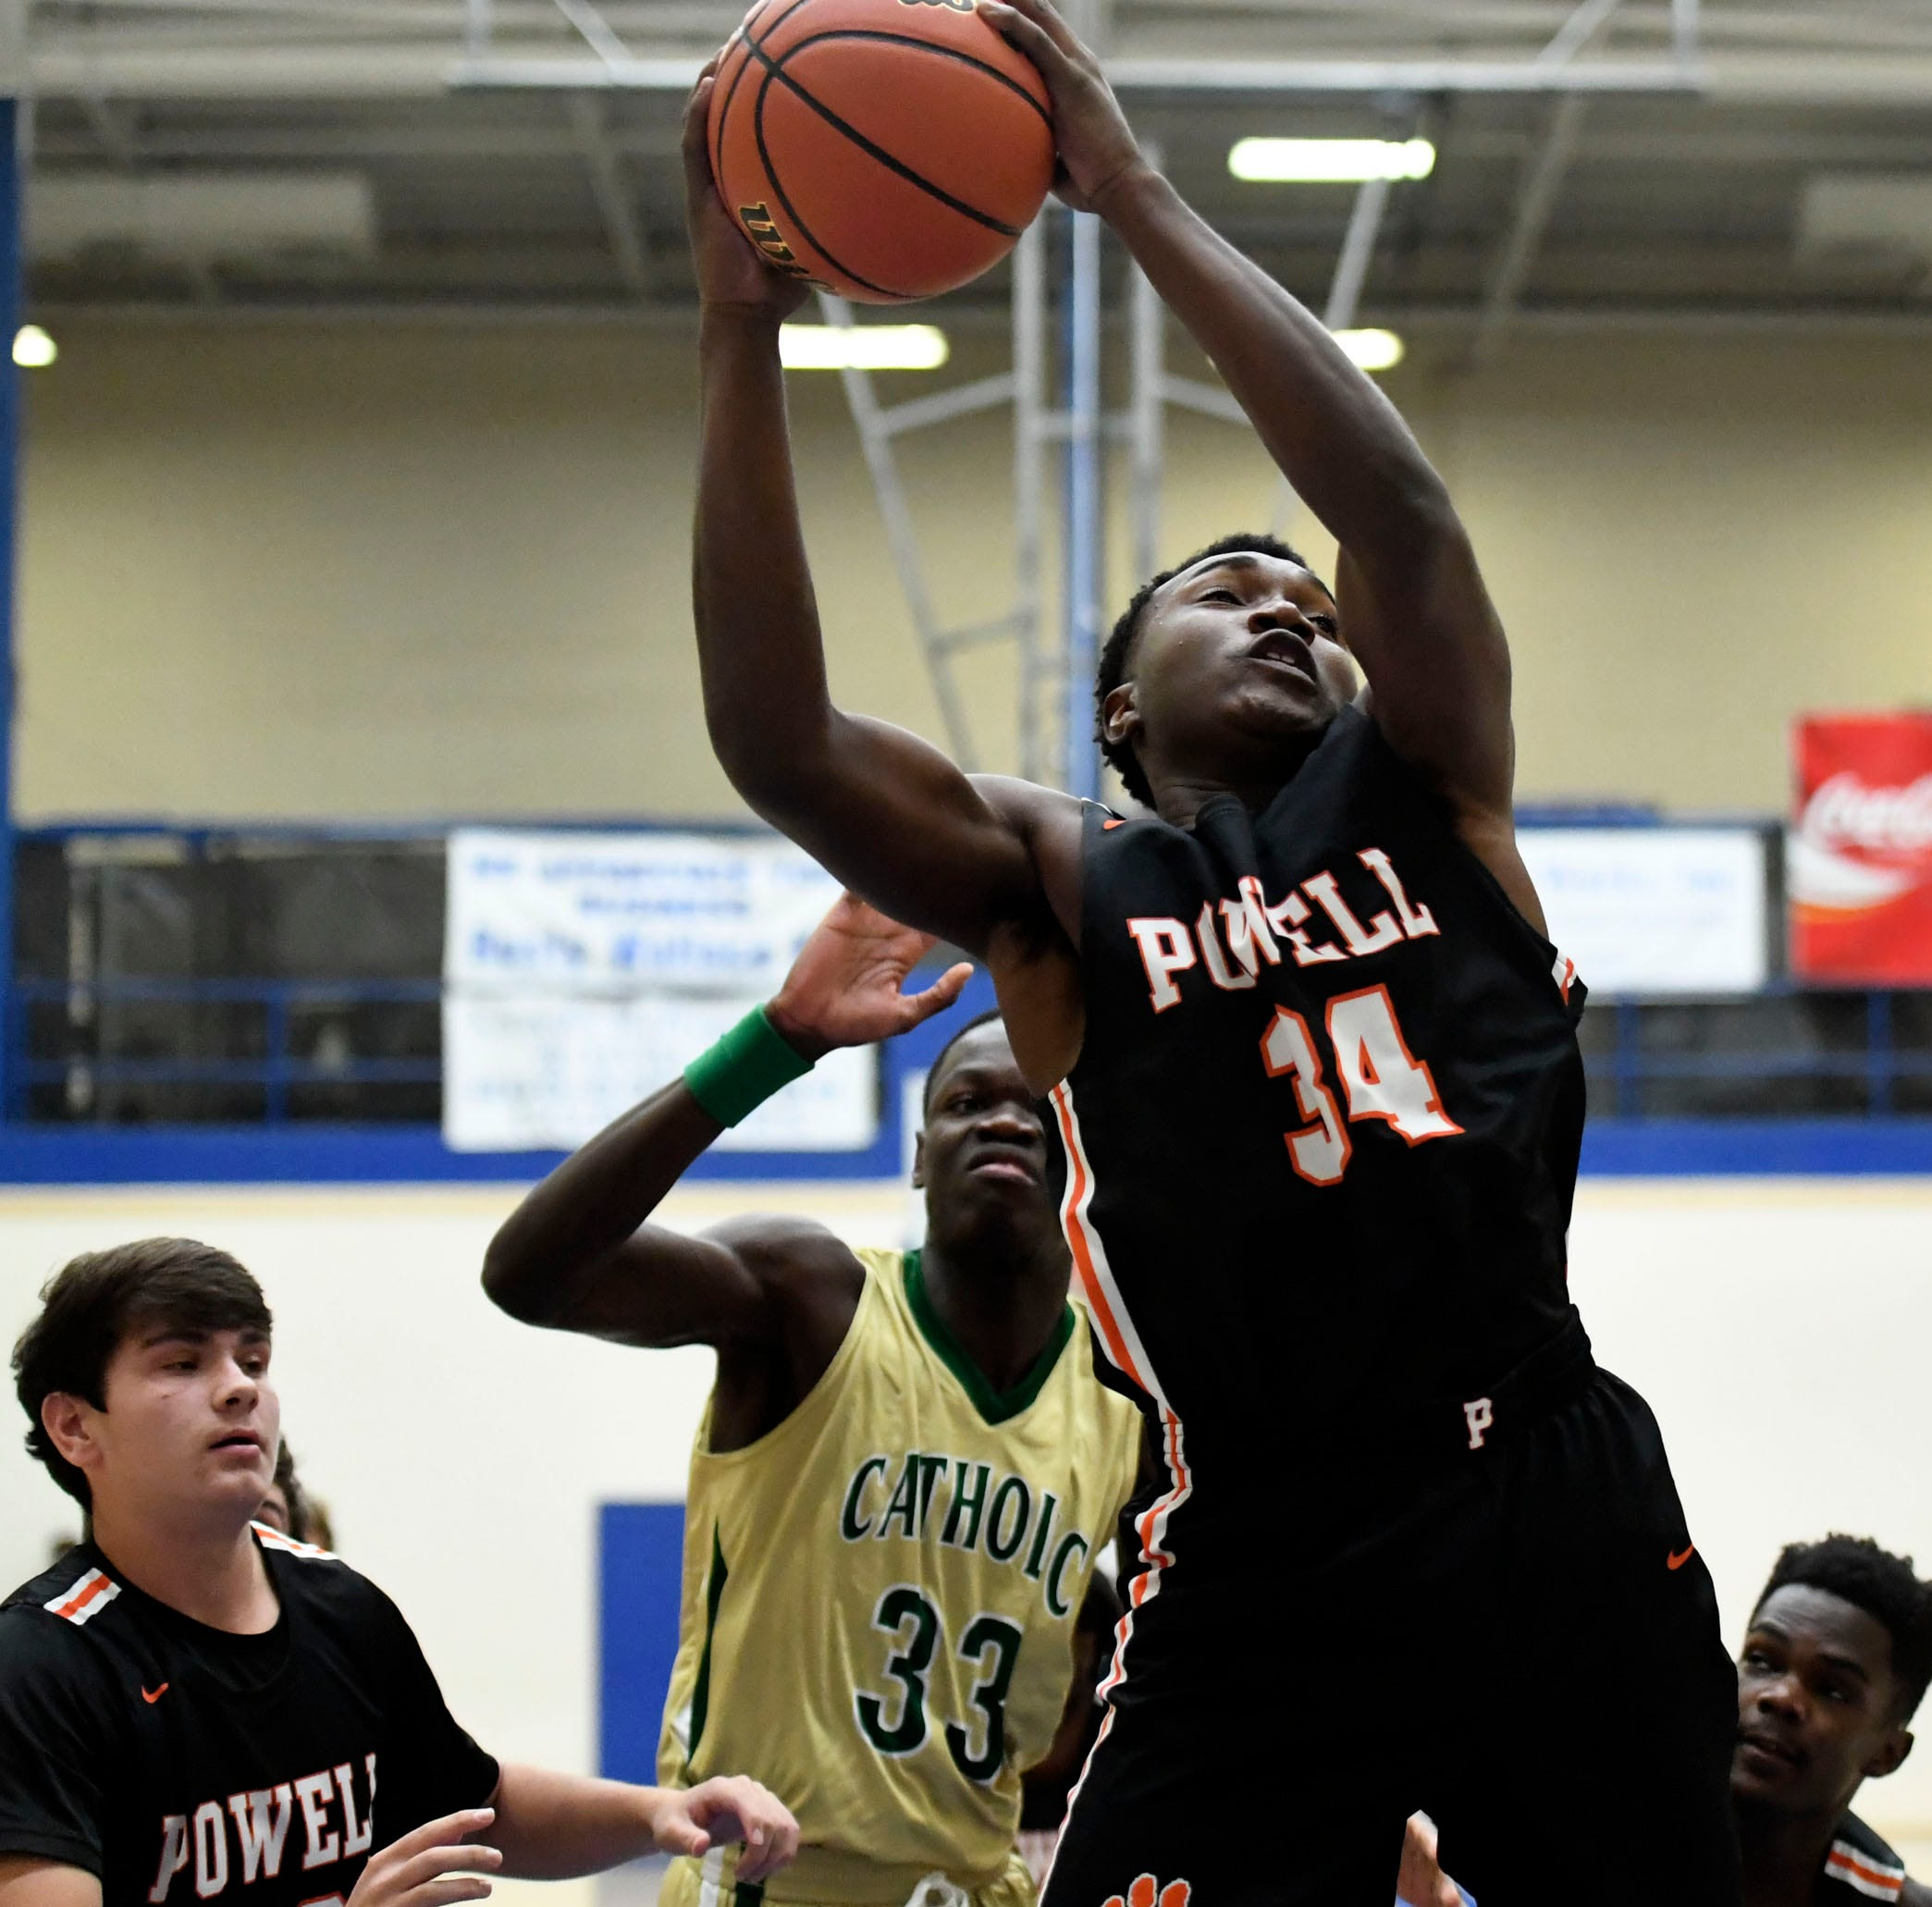 High school basketball: Powell to rely on 'defense, energy' to compete this season